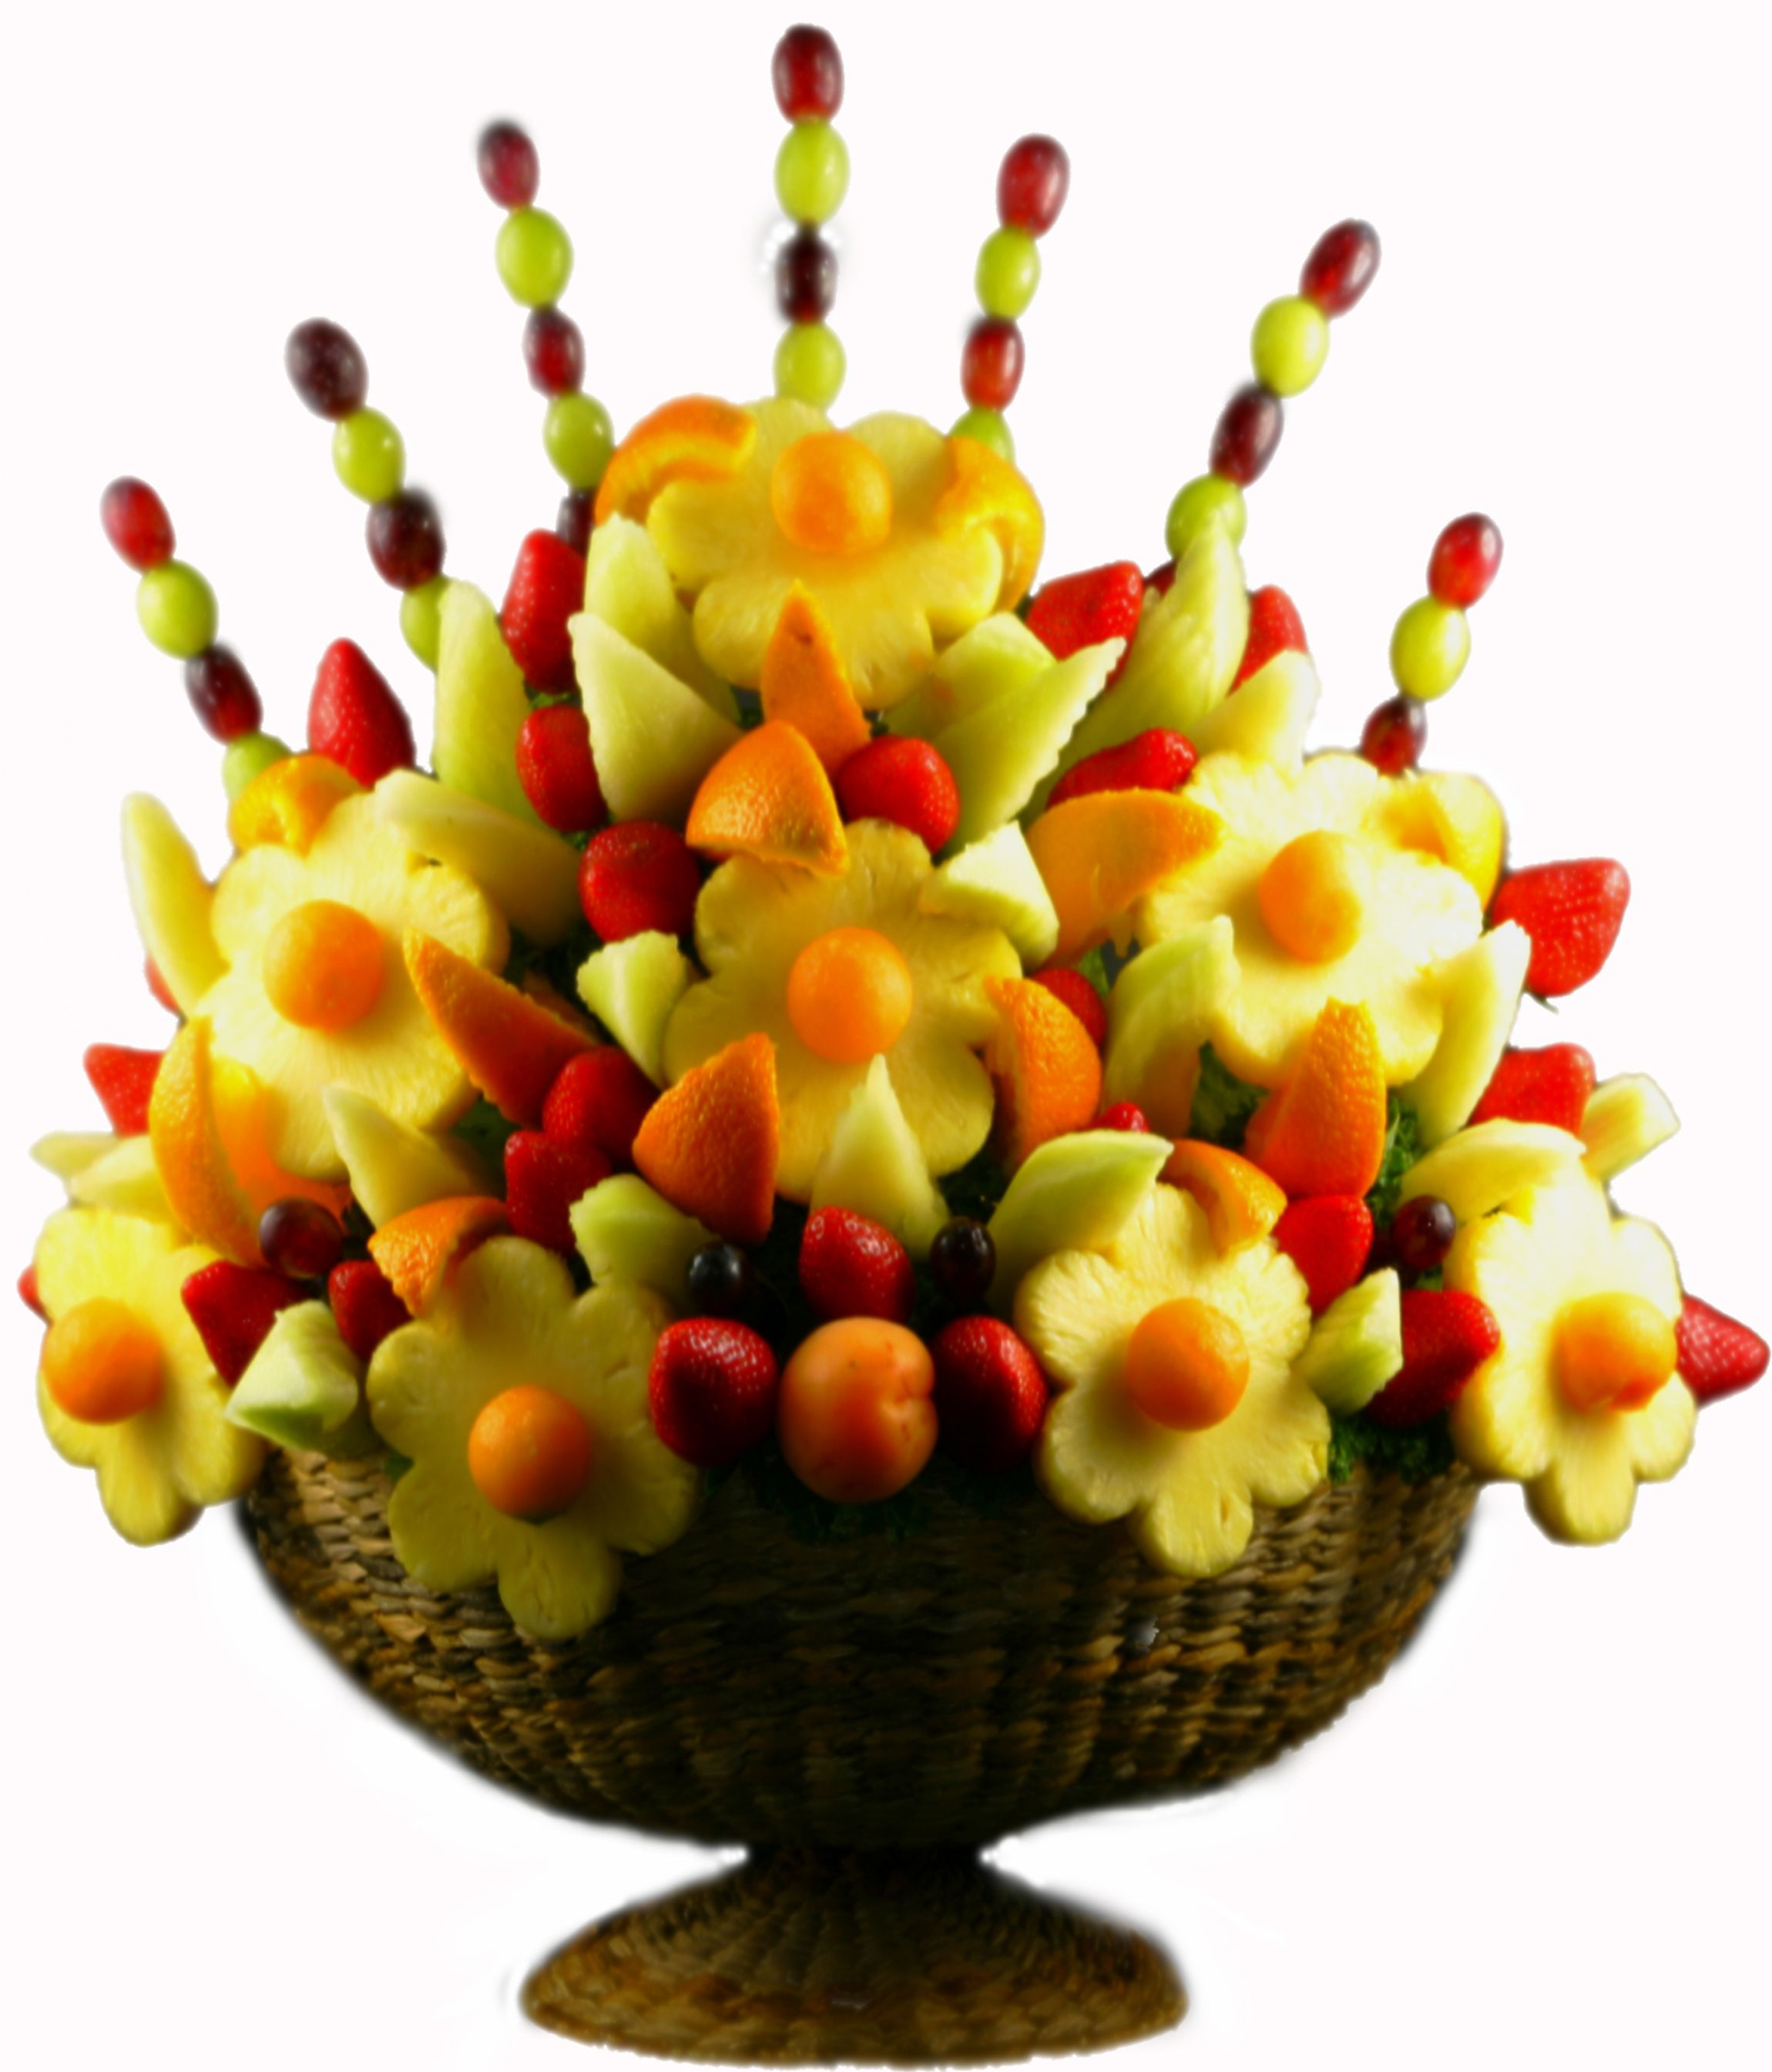 Fruit And Vegetable Carving On Pinterest 150 Pins